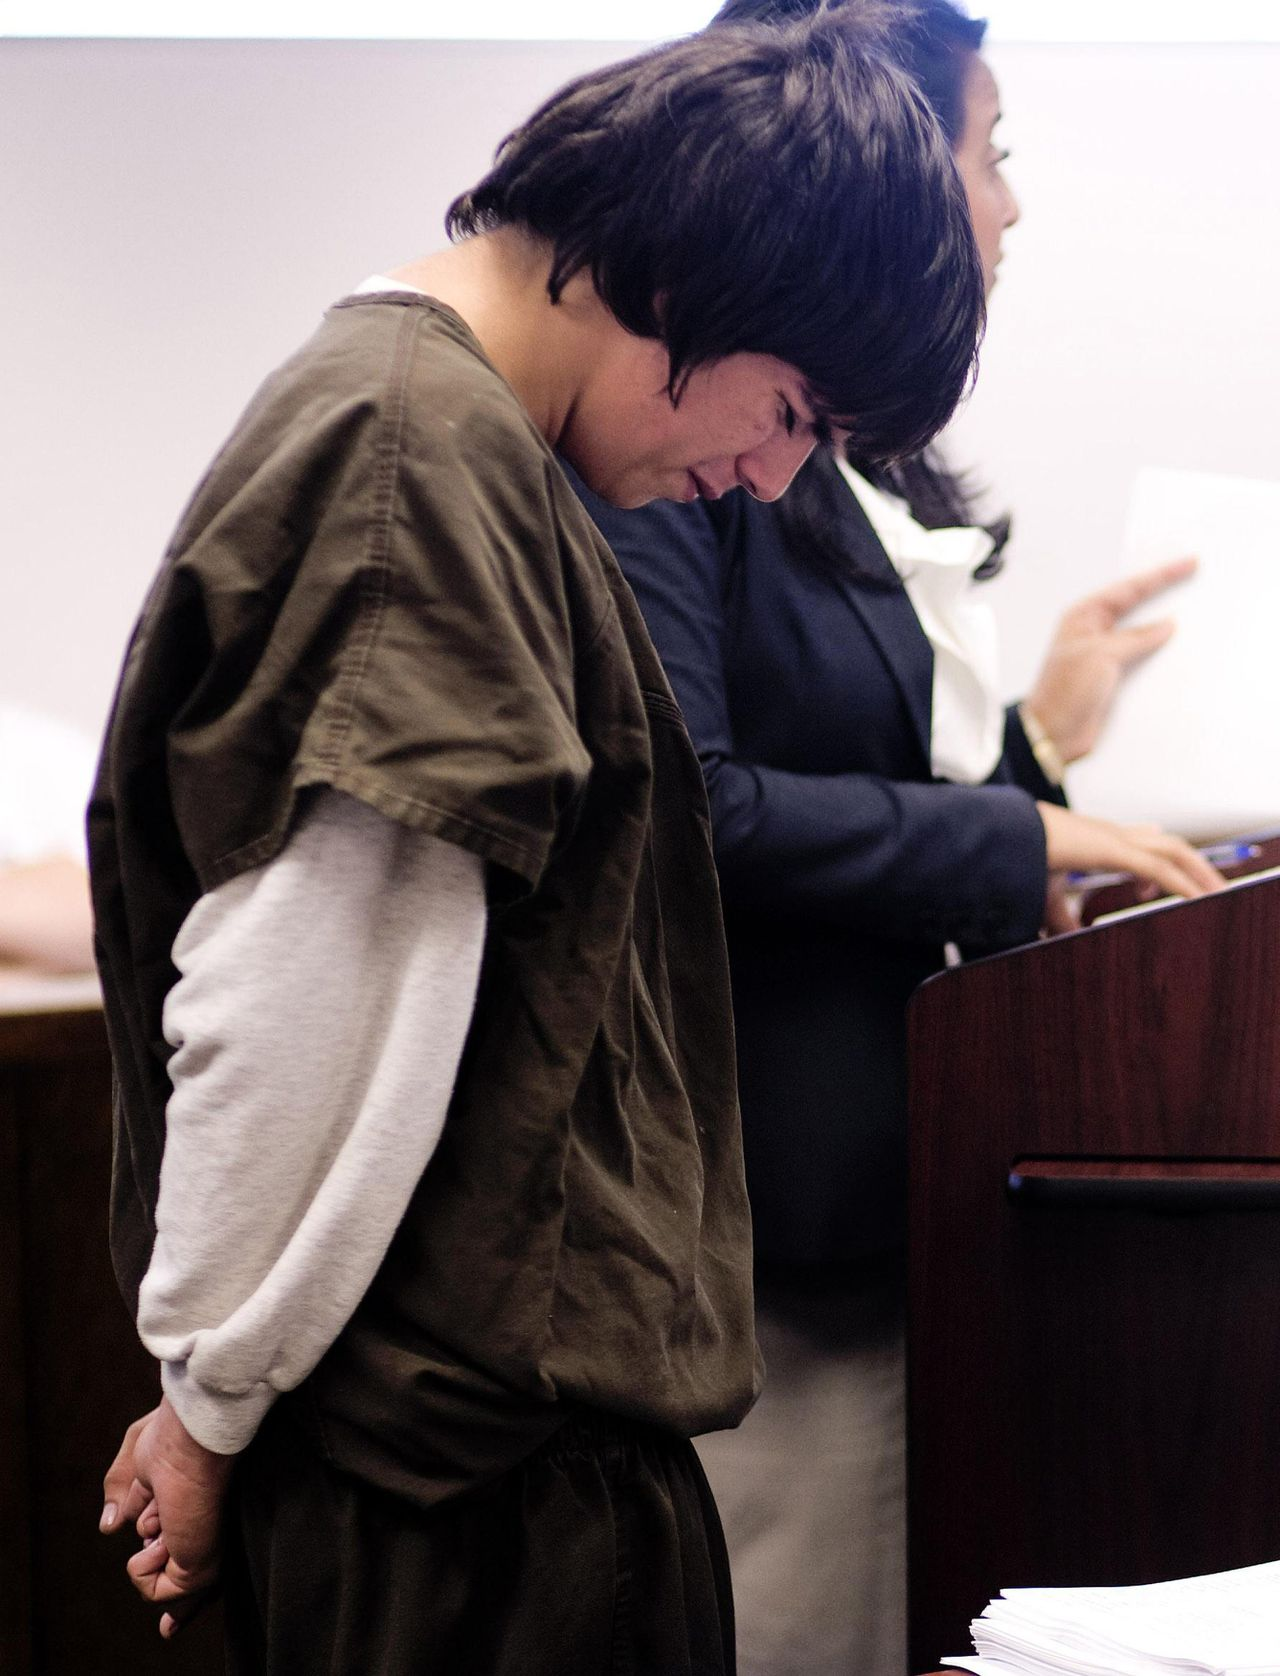 Jared Cano verscheen gisteren voor de rechter. Foto Reuters Jared Cano appears before judge Tracy Sheehan in the Hillsborough County, Florida Courthouse Annex August 17, 2011. Florida police on Wednesday said they had uncovered a plot by the 17-year-old Cano to attack and cause mass casualties at his former school, Freedom High School, in Orlando after arresting him and discovering bomb-making material at his home. REUTERS/Cherie Diez-St. Petersburg Times/Handout (UNITED STATES - Tags: CRIME LAW CIVIL UNREST) FOR EDITORIAL USE ONLY. NOT FOR SALE FOR MARKETING OR ADVERTISING CAMPAIGNS. THIS IMAGE HAS BEEN SUPPLIED BY A THIRD PARTY. IT IS DISTRIBUTED, EXACTLY AS RECEIVED BY REUTERS, AS A SERVICE TO CLIENTS. TAMPA OUT. USA TODAY OUT. HERNANDO OUT. CITRUS COUNTY CHRONICLE OUT. NO SALES NO MAGAZINES